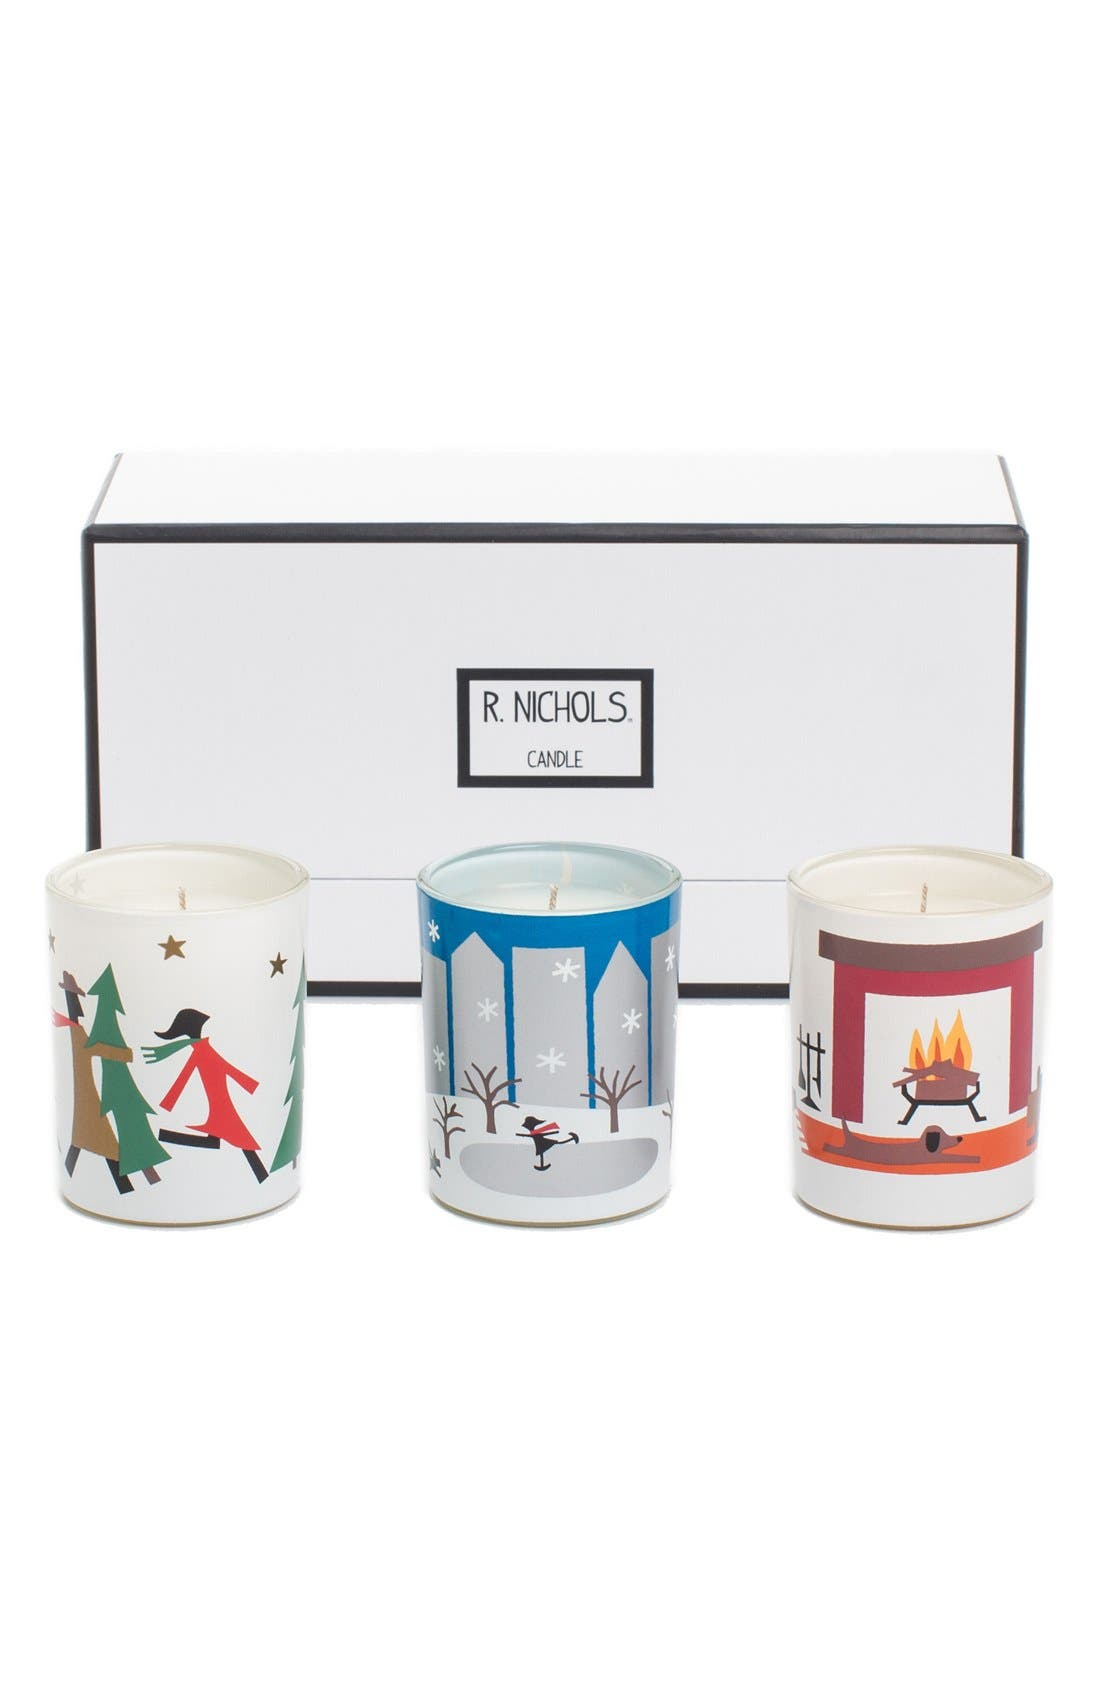 R. Nichols Scented Votive Candle Trio